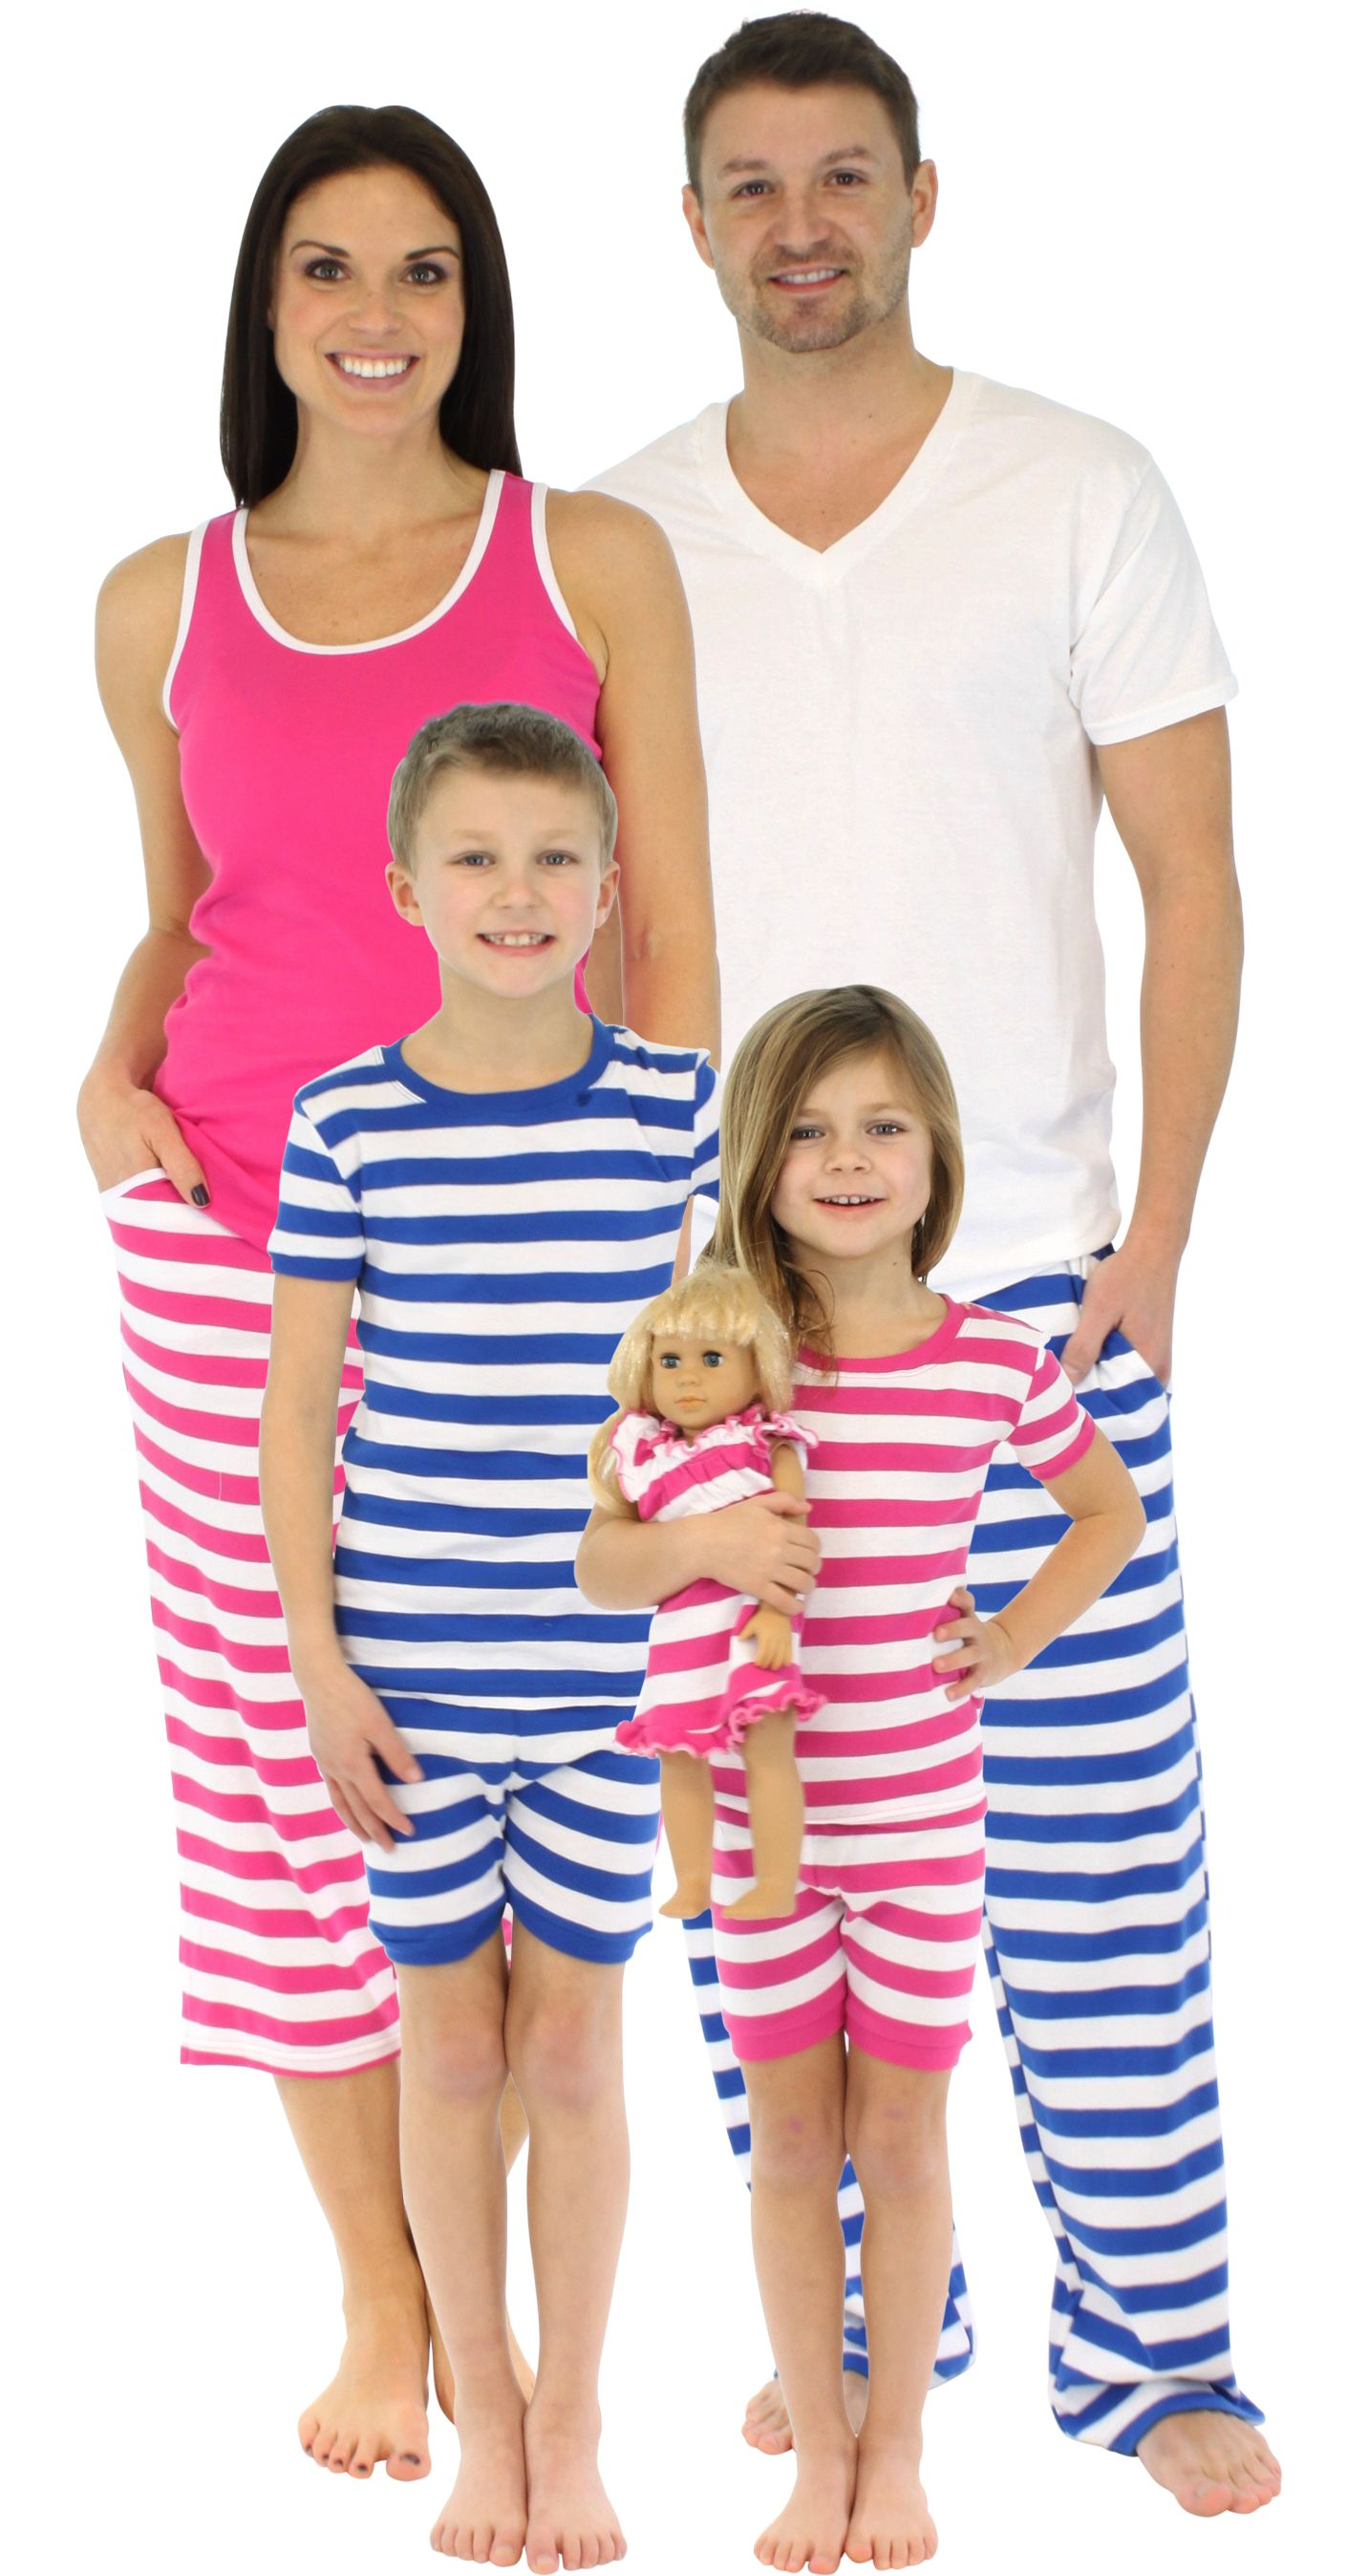 b3d75c8775d2 SleepytimePJs family matching striped pajamas are perfect for the entire  family. Available in women s